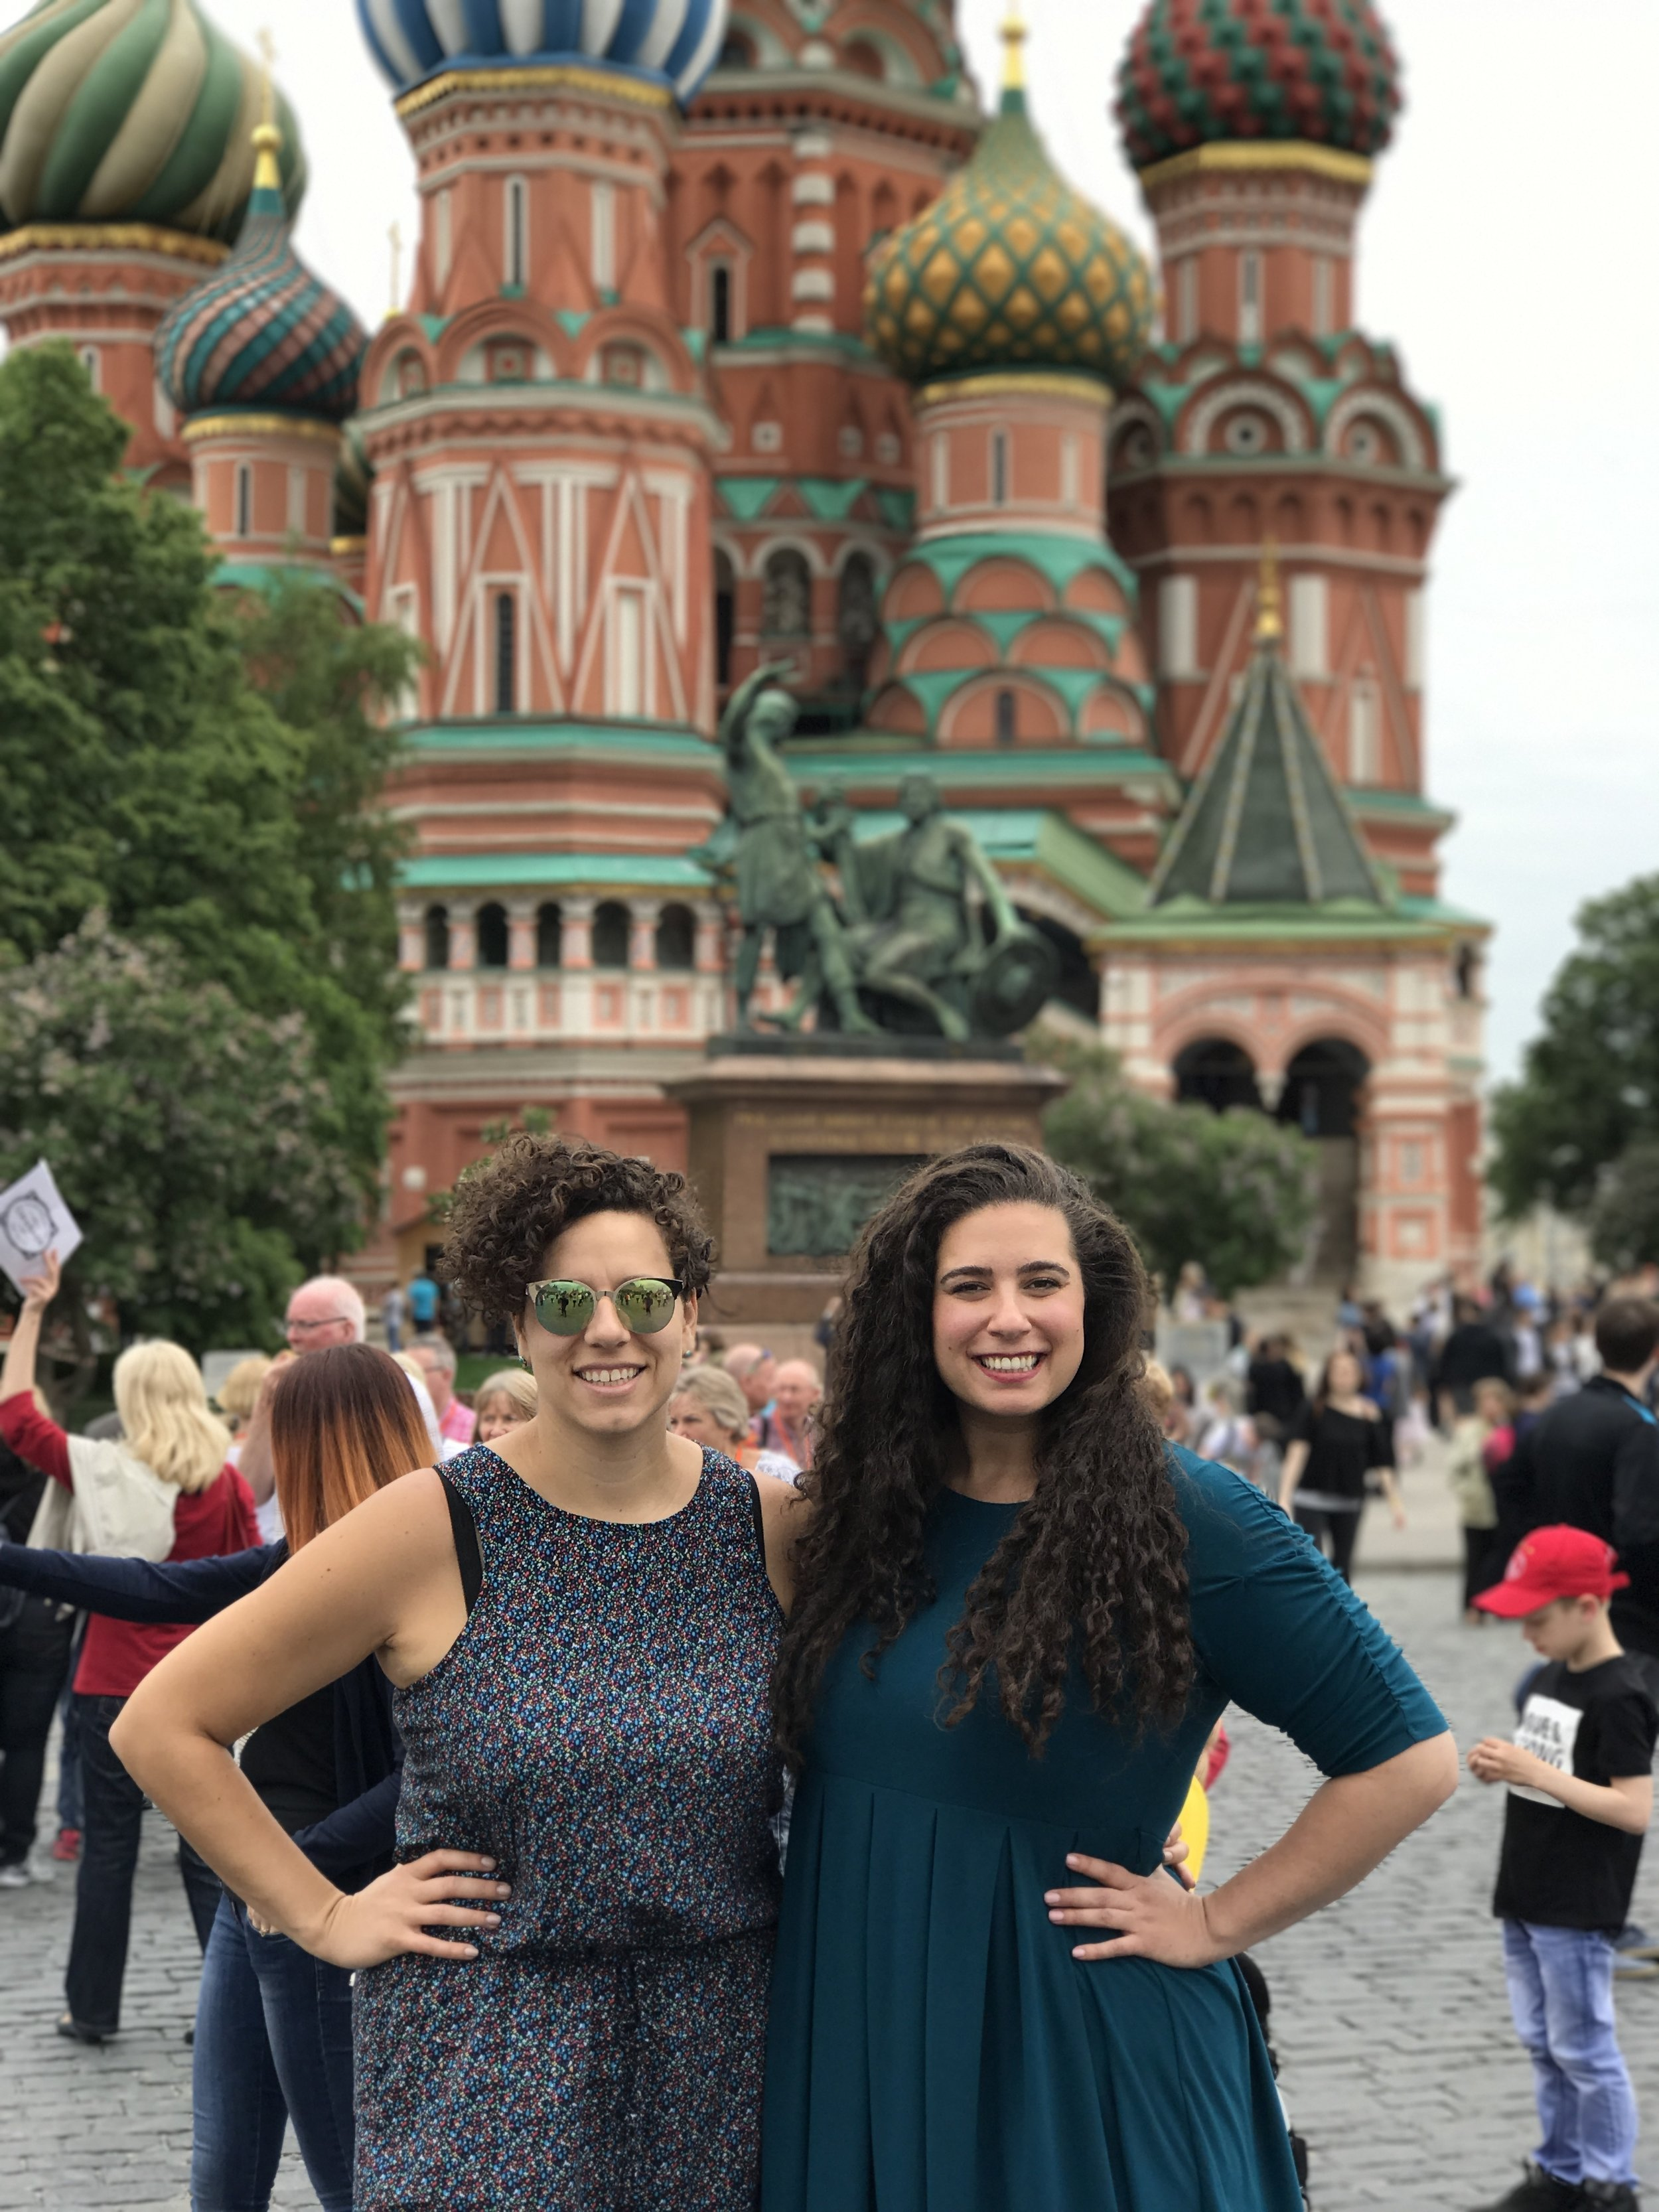 Hi! - Welcome to our blog!Travel enables us to learn more about ourselves as we navigate the world around us. By sharing our experiences as a same-sex couple, we aspire to inspire the LGBTQ+ community and beyond to grow by exploring their world. Enjoy!